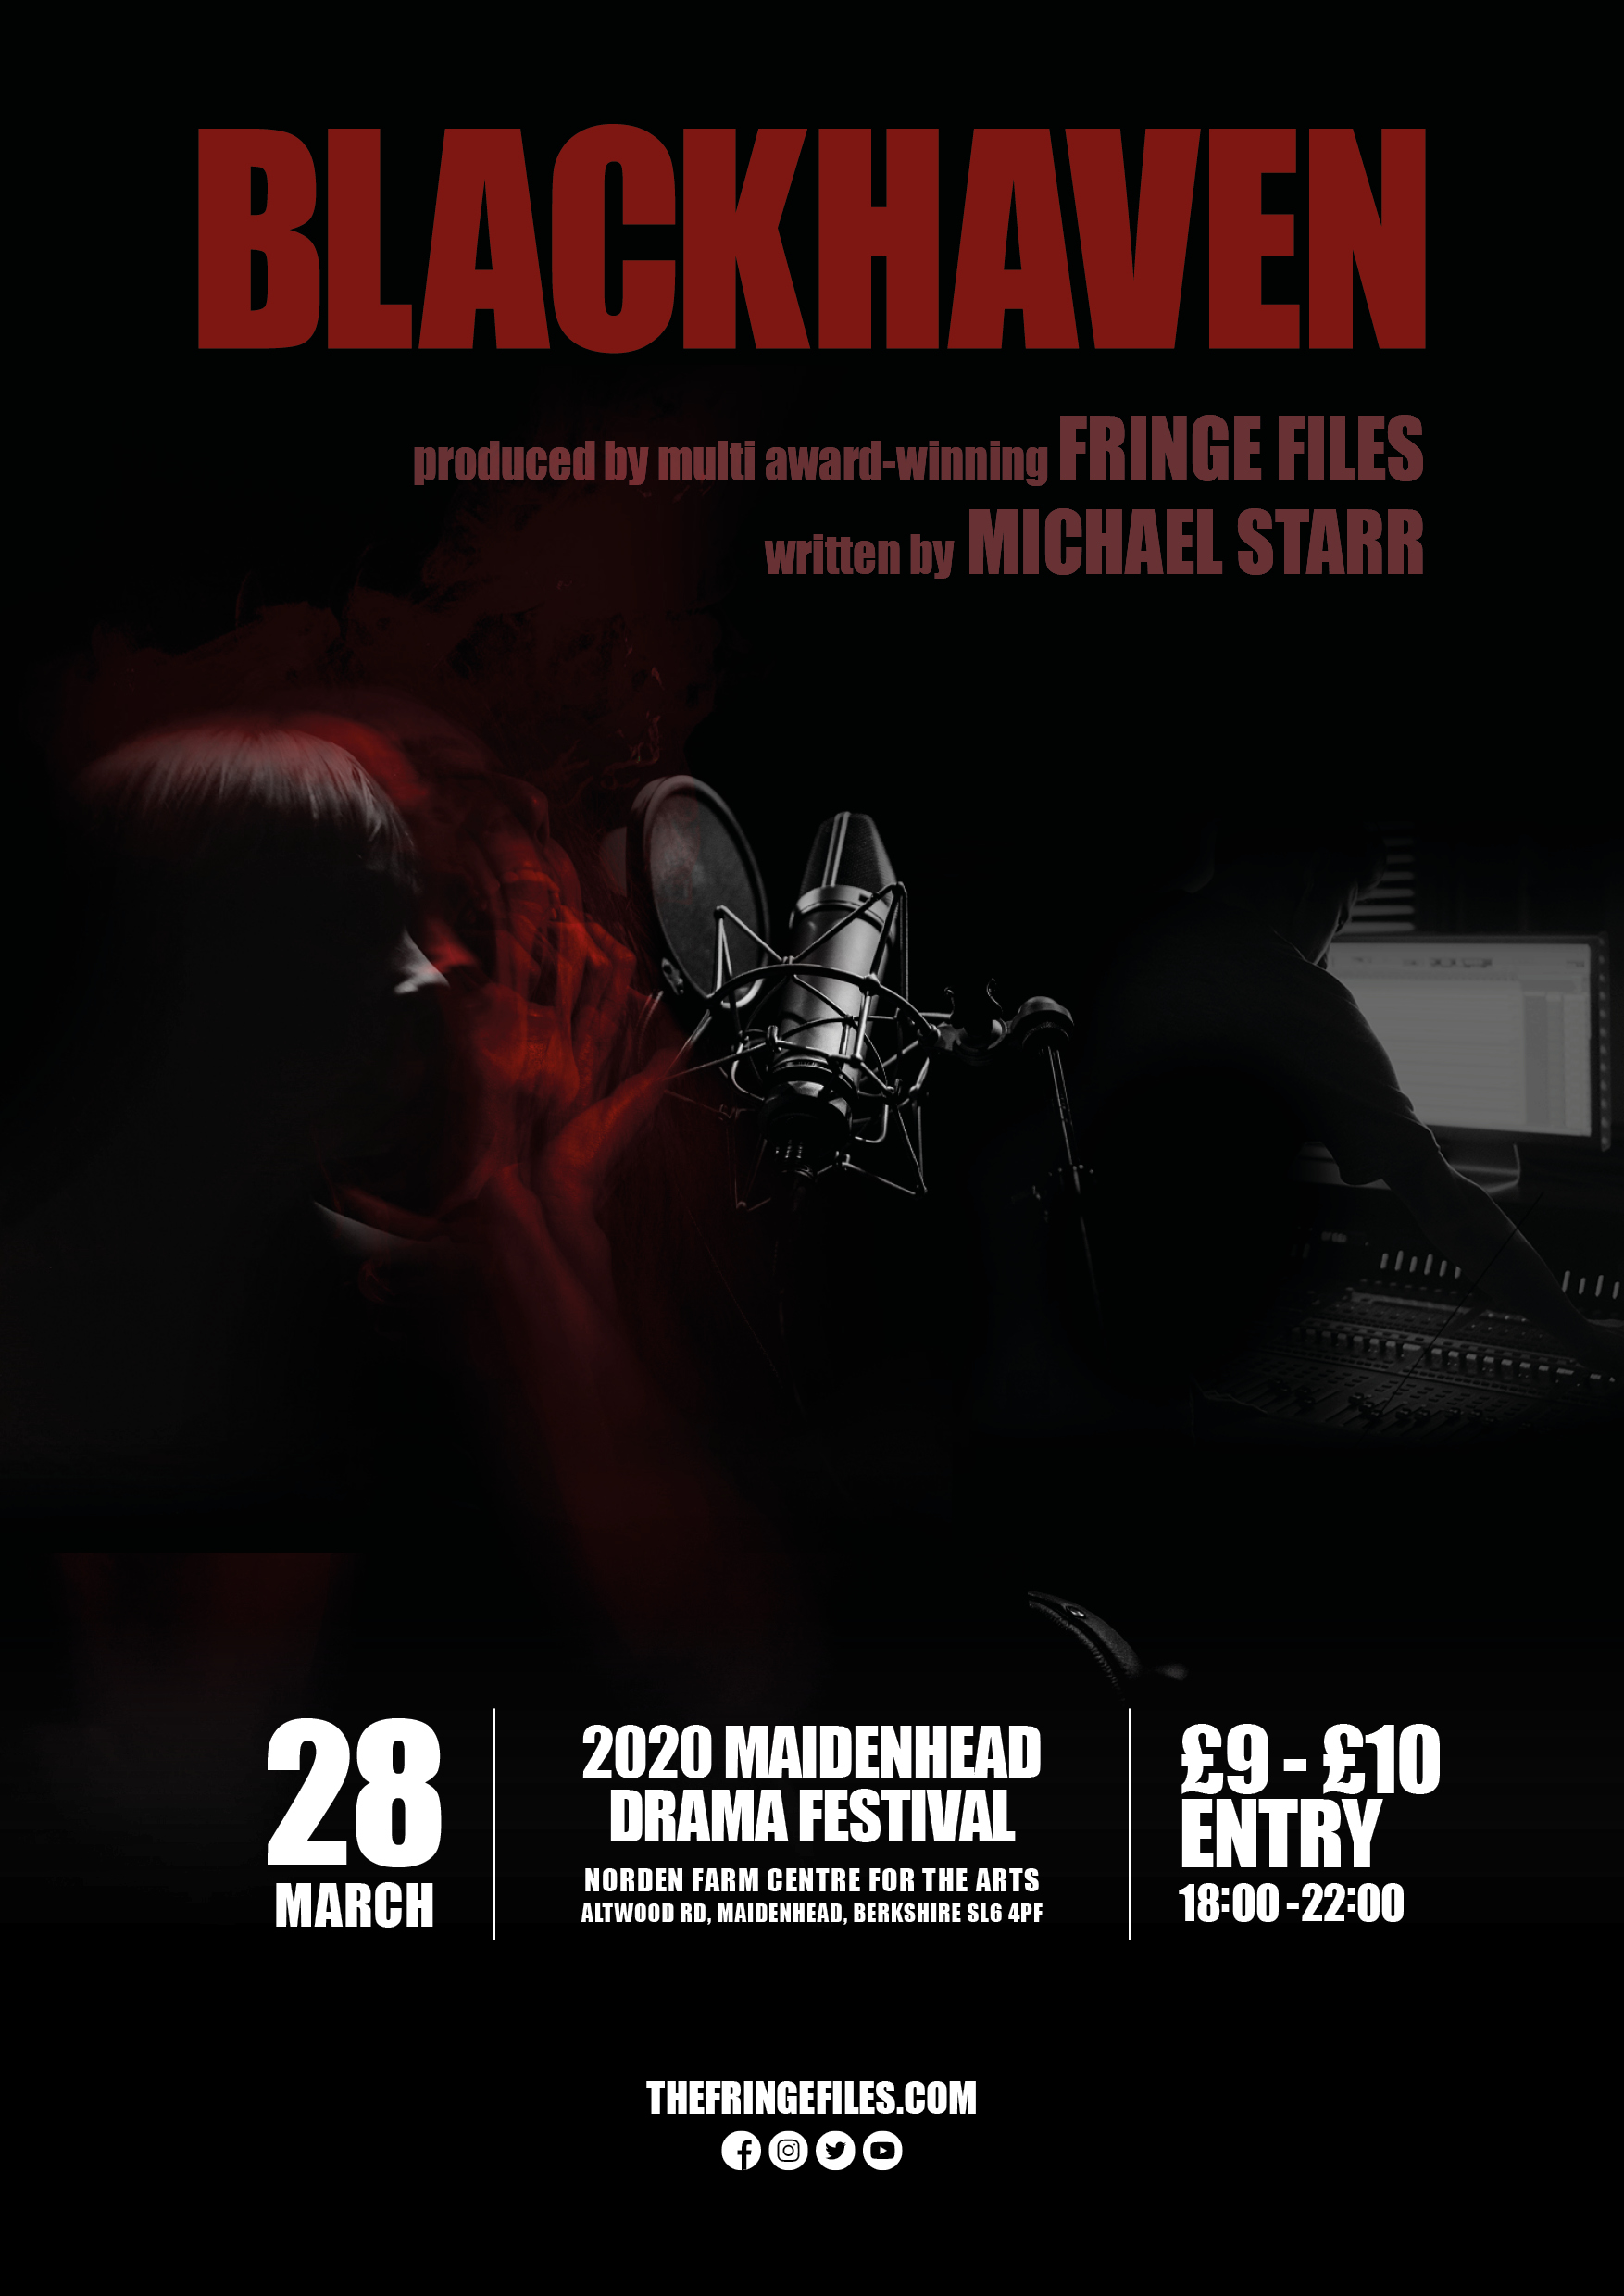 Blackhaven poster design for the 2020 Maidenhead Drama Festival